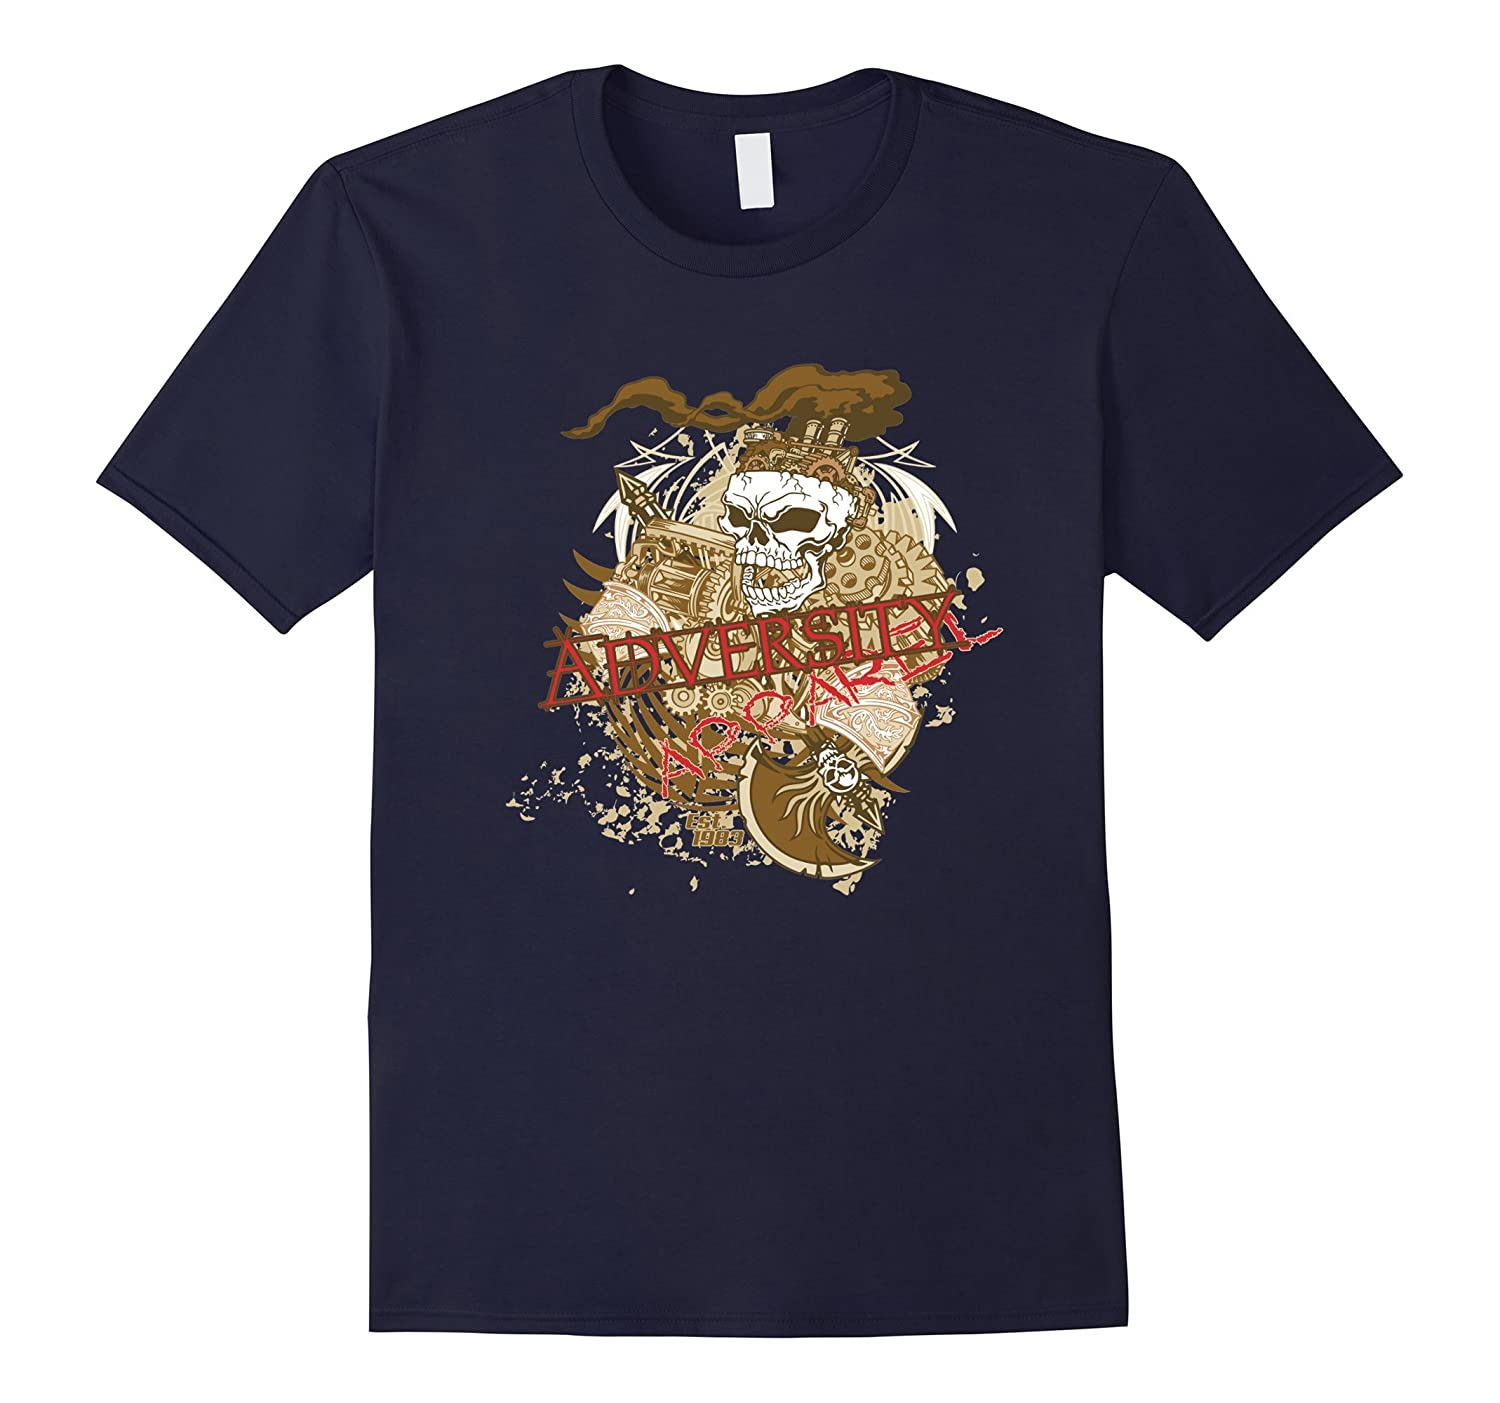 Adversity Apparel T Shirts For Women Graphic Tees For Men-BN